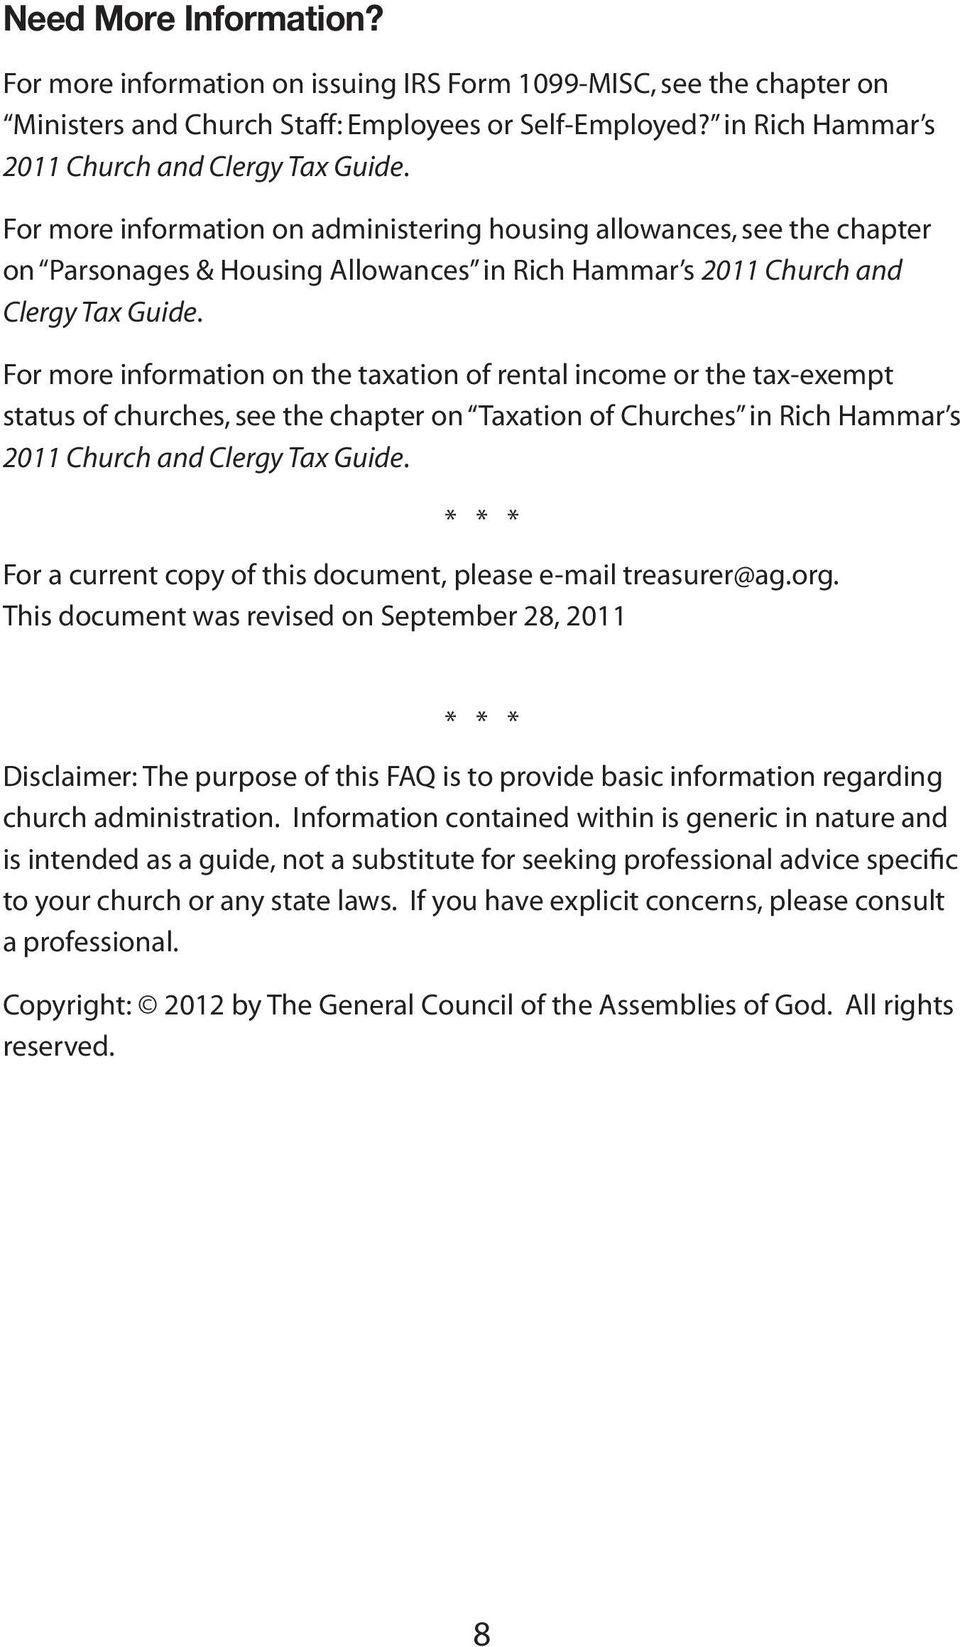 For more information on the taxation of rental income or the tax-exempt status of churches, see the chapter on Taxation of Churches in Rich Hammar s 2011 Church and Clergy Tax Guide.